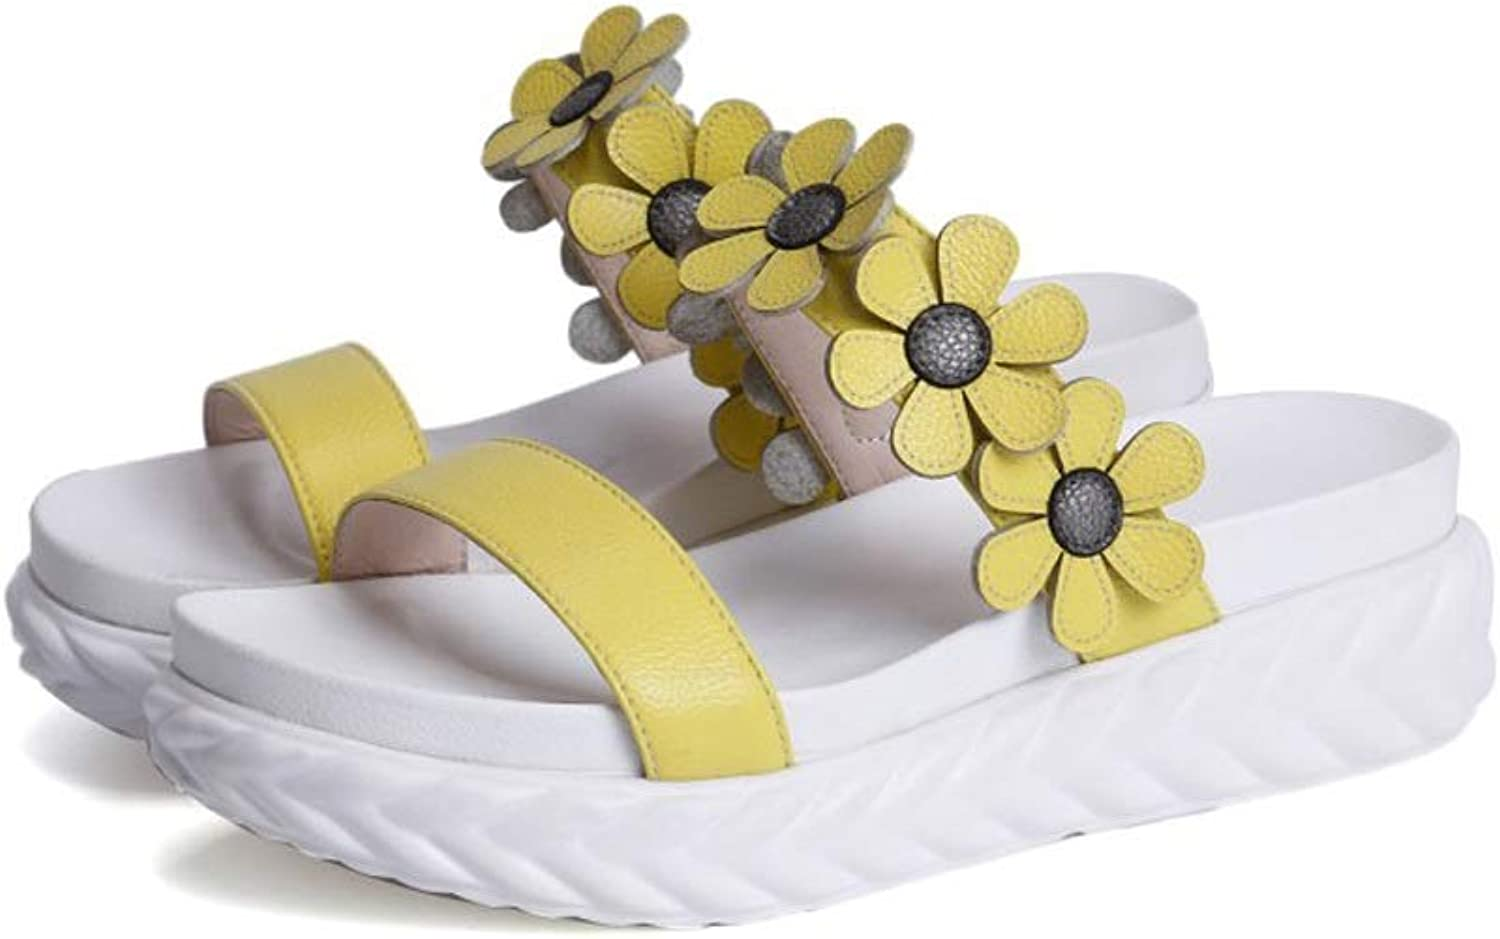 Ailj Women's Summer Sandals, Fashion Little Flowers Open Toe Low Heel Sandals Thick Soft Flat Slippers Yellow